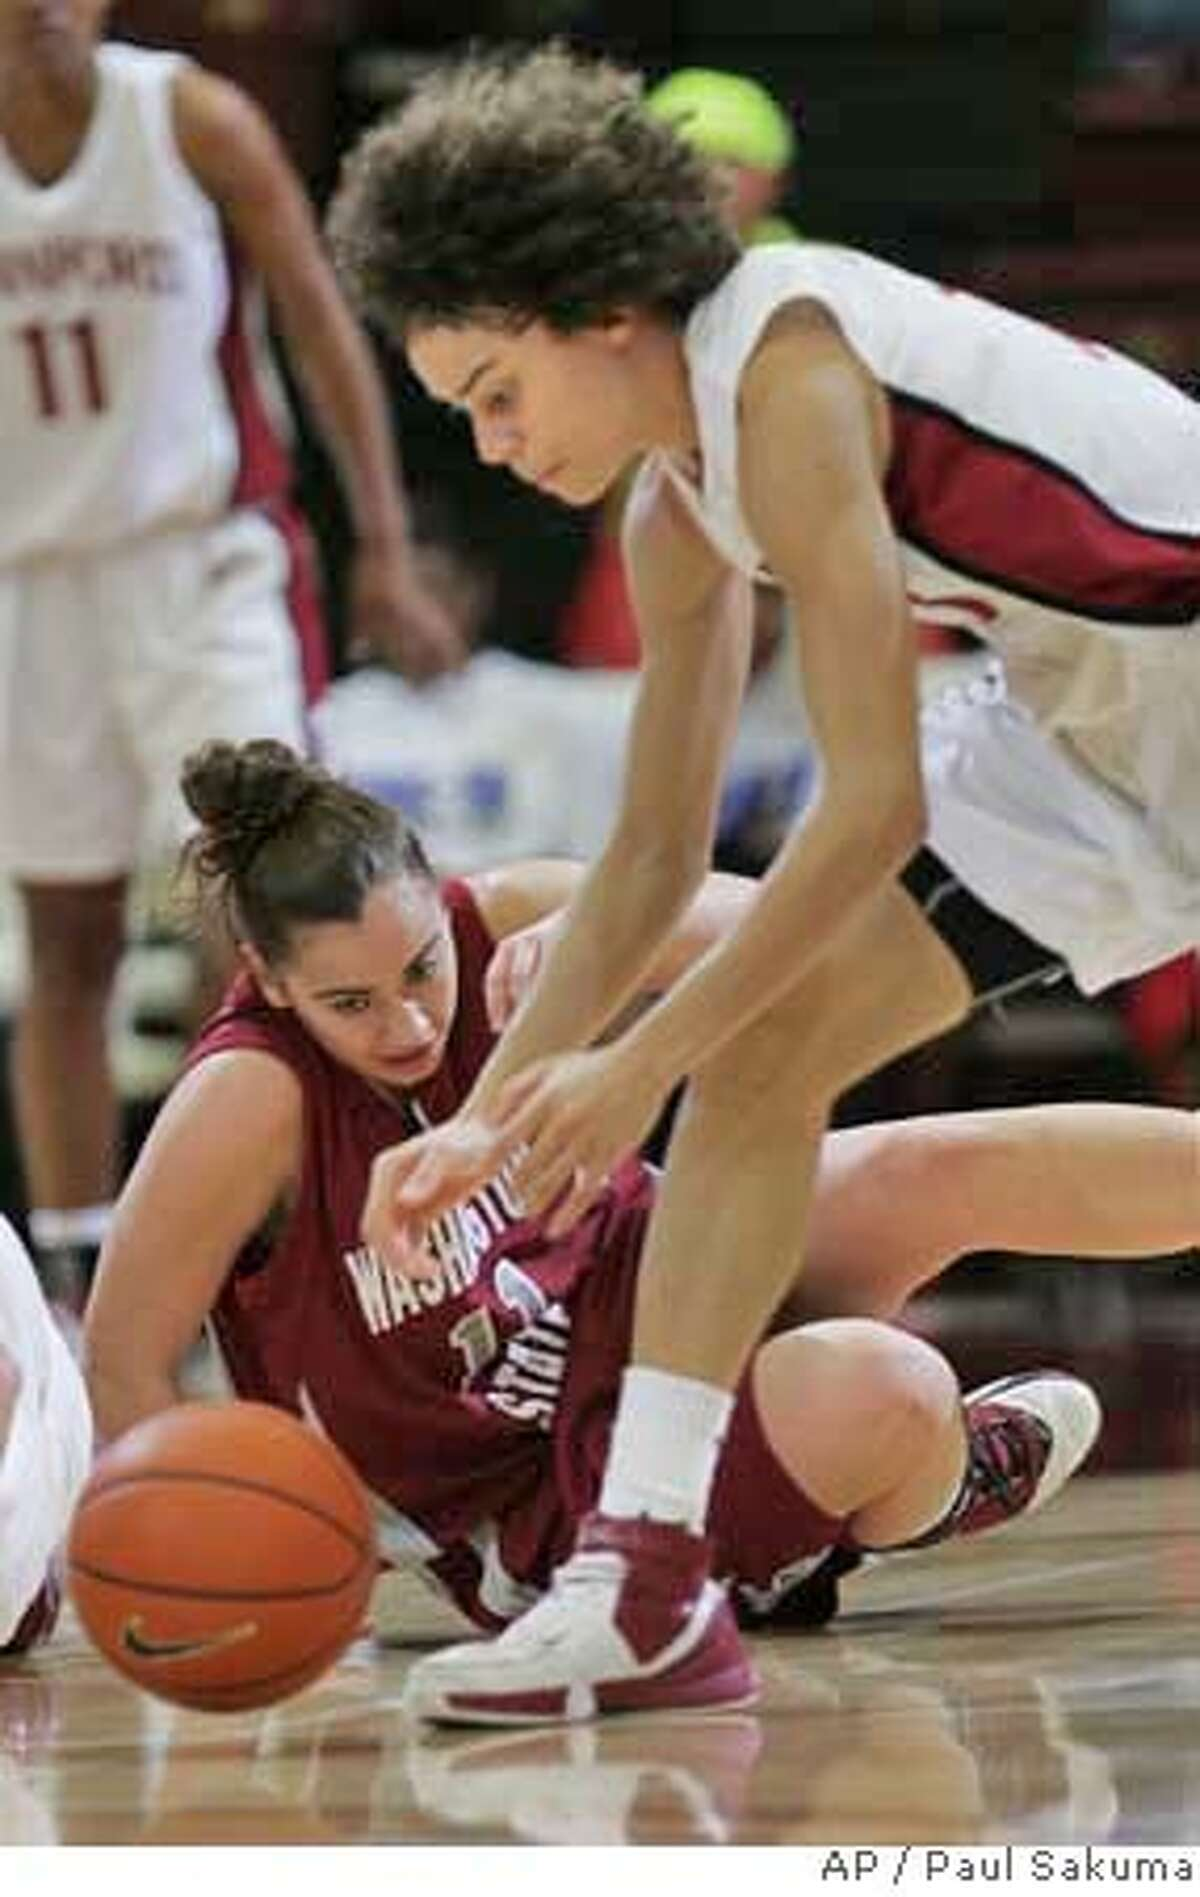 Stanford guard Cissy Pierce, right, gets the ball away from Washington State guard Colleen Betteridge, lower left, in the first half of their NCAA basketball game in Stanford, Calif., Thursday, Feb. 8, 2007. (AP Photo/Paul Sakuma)